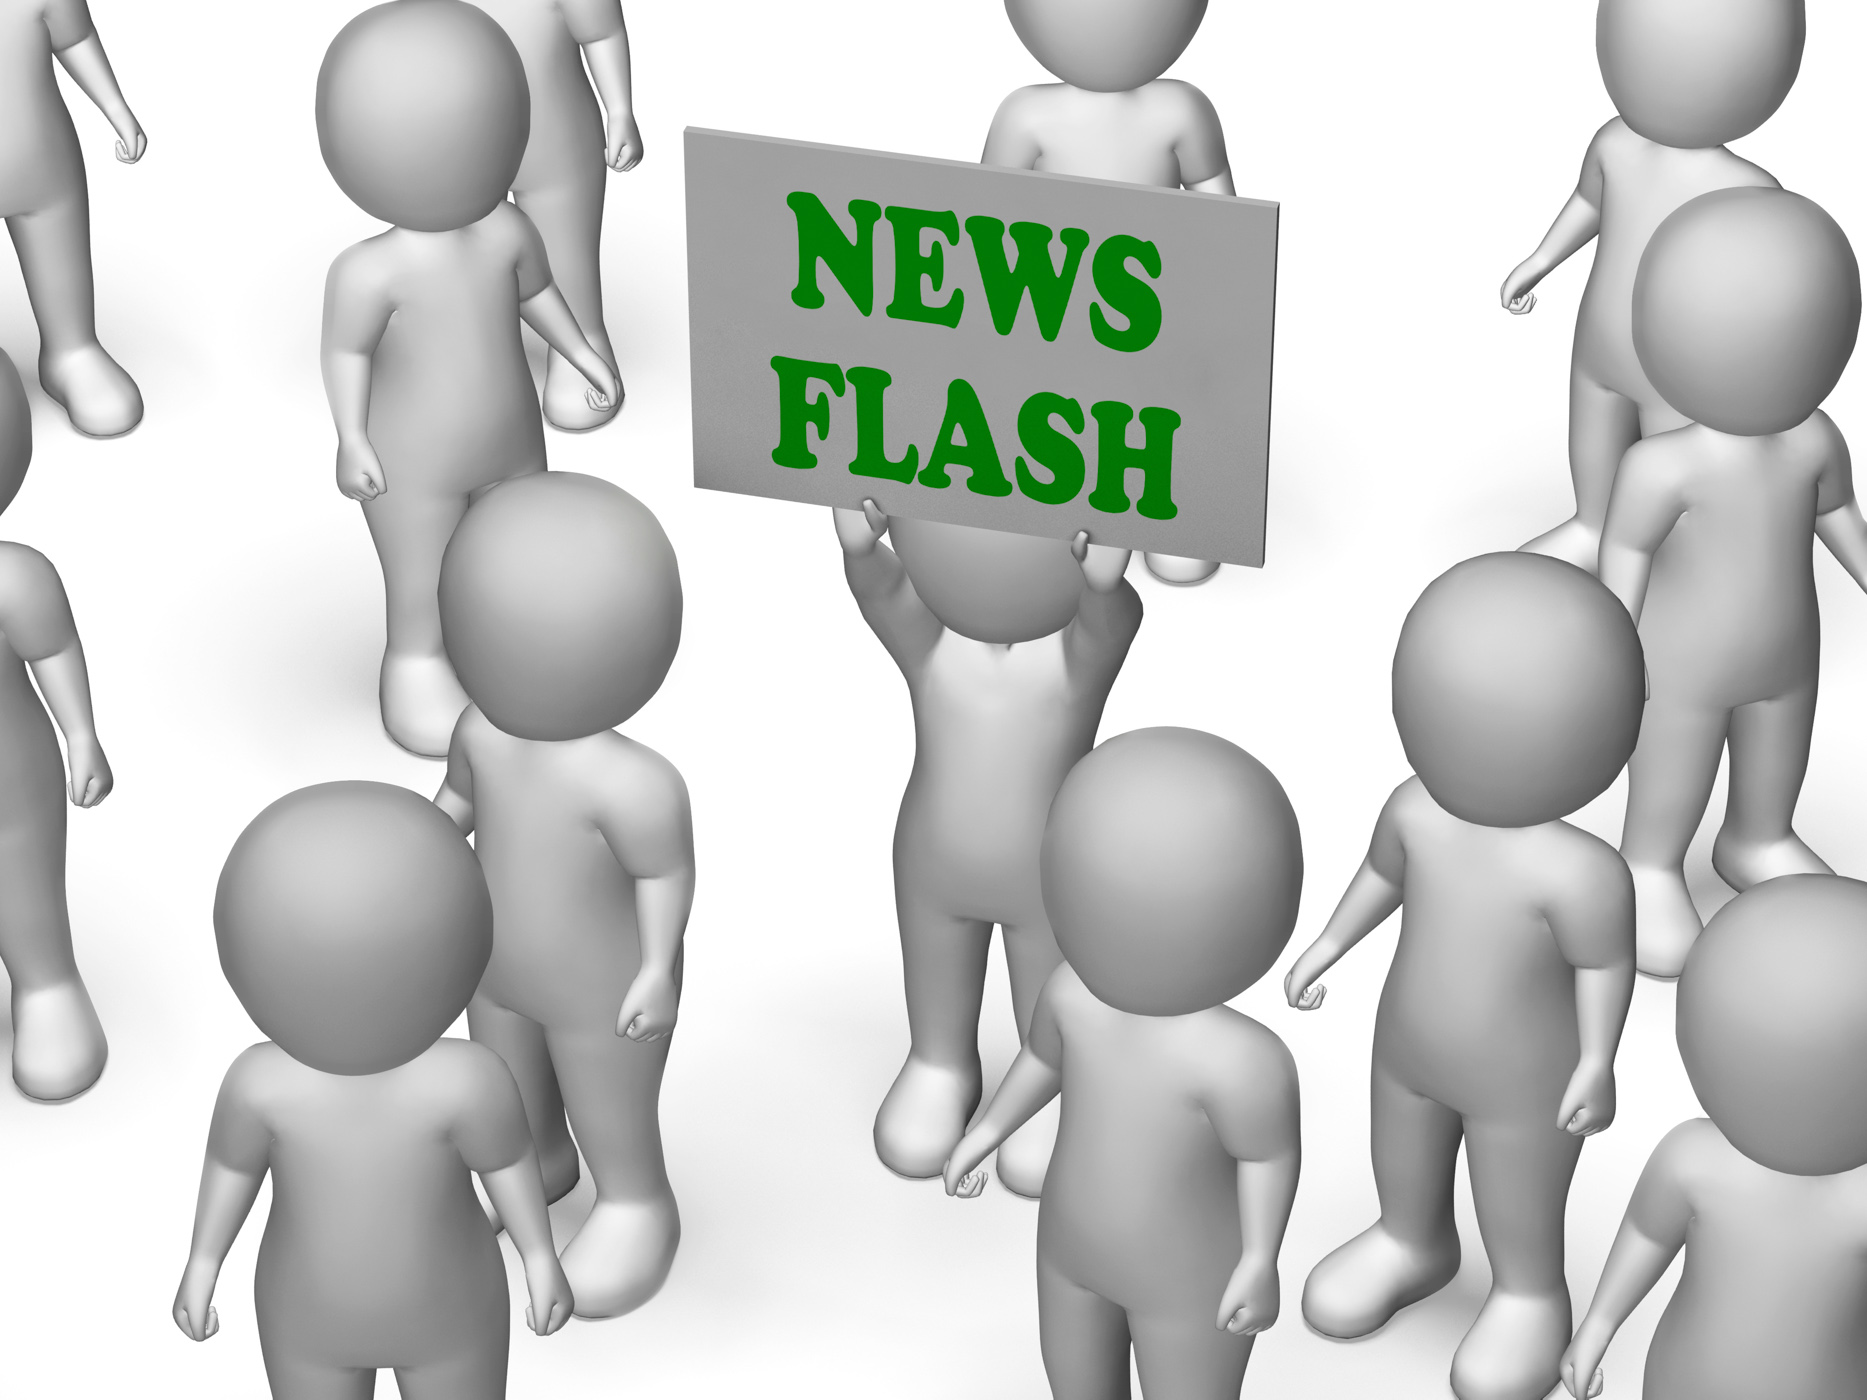 News Flash Board Character Shows Daily News And Journalism, Knowledge, Report, Press, Newspaper, HQ Photo